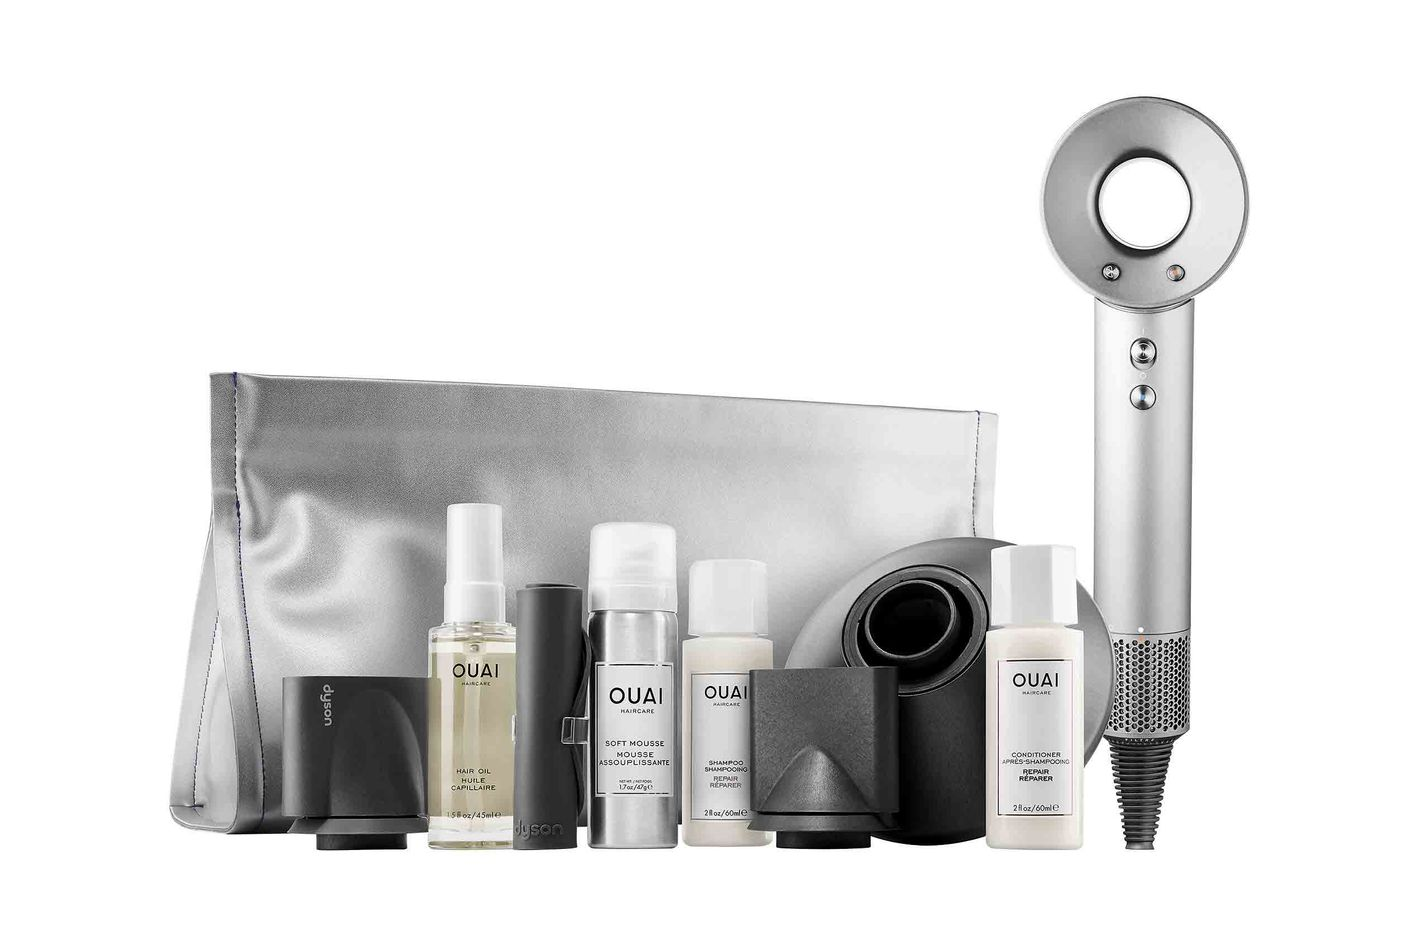 DYSON Blown-A-Ouai Set